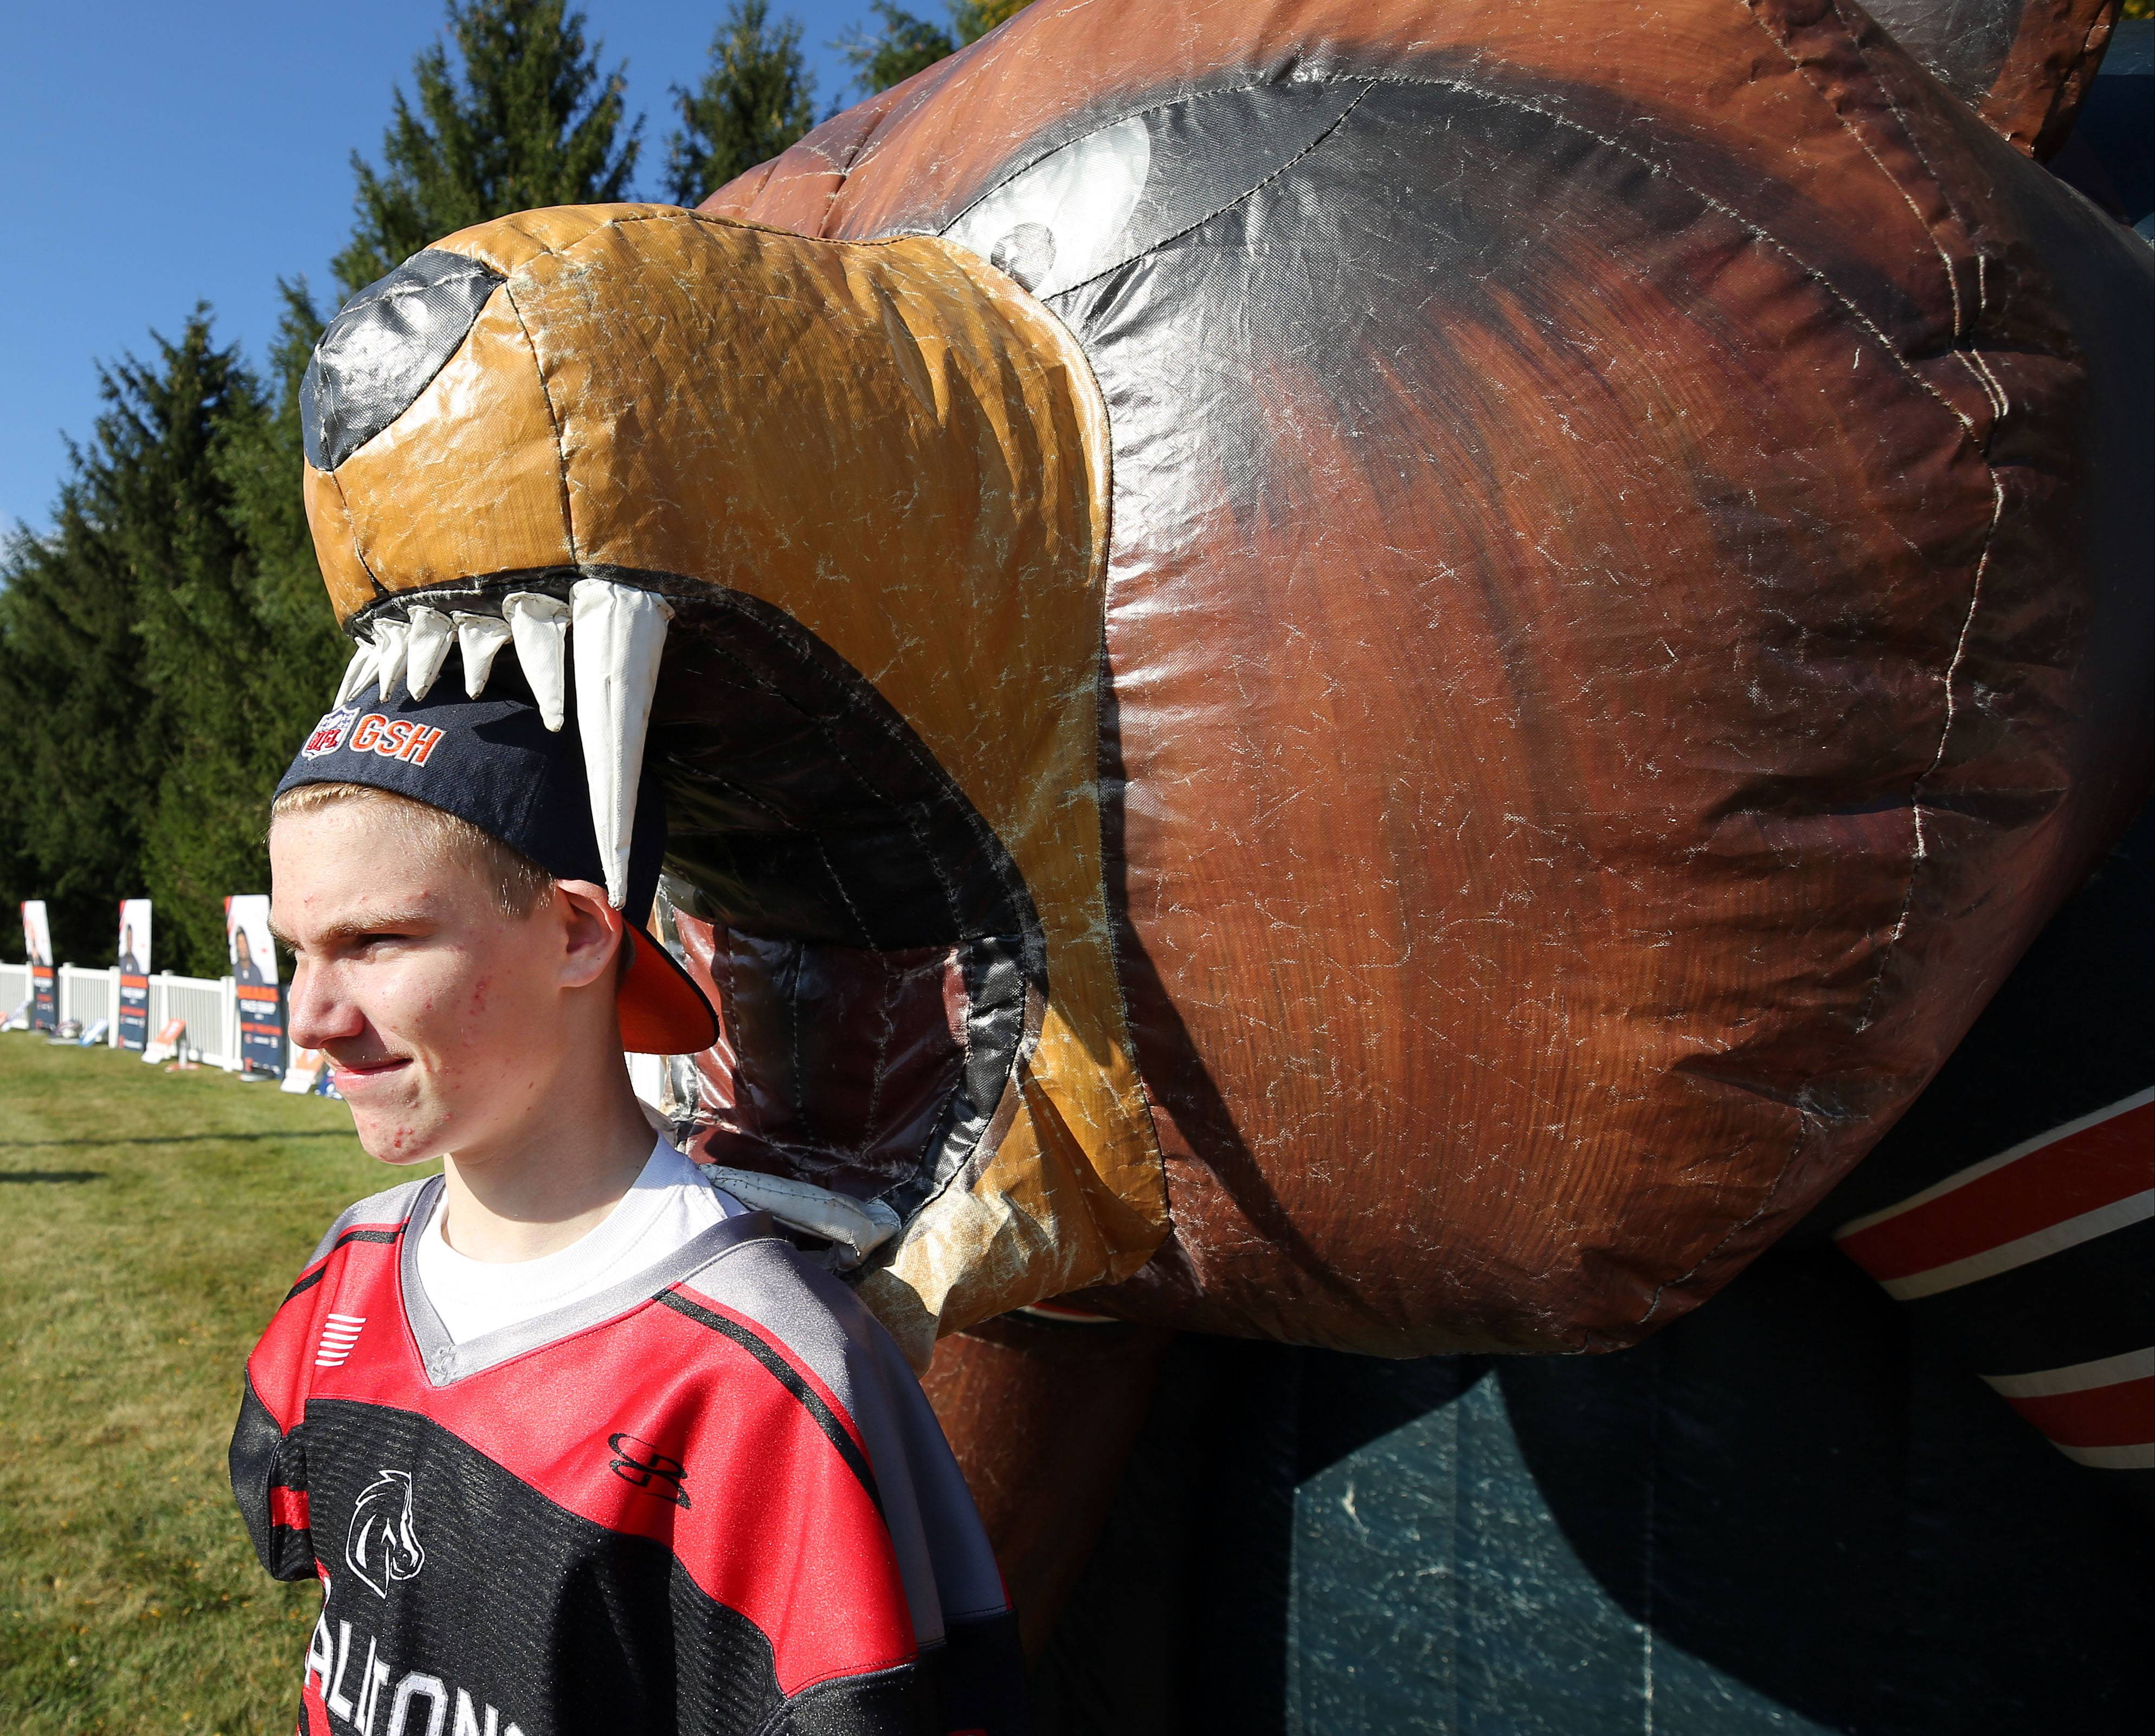 13-year-old Jacob Lichter of Wauconda poses for a picture in the mouth of an inflatable bear during a pep rally Tuesday for breast cancer awareness at Advocate Condell Medical Center in Libertyville.